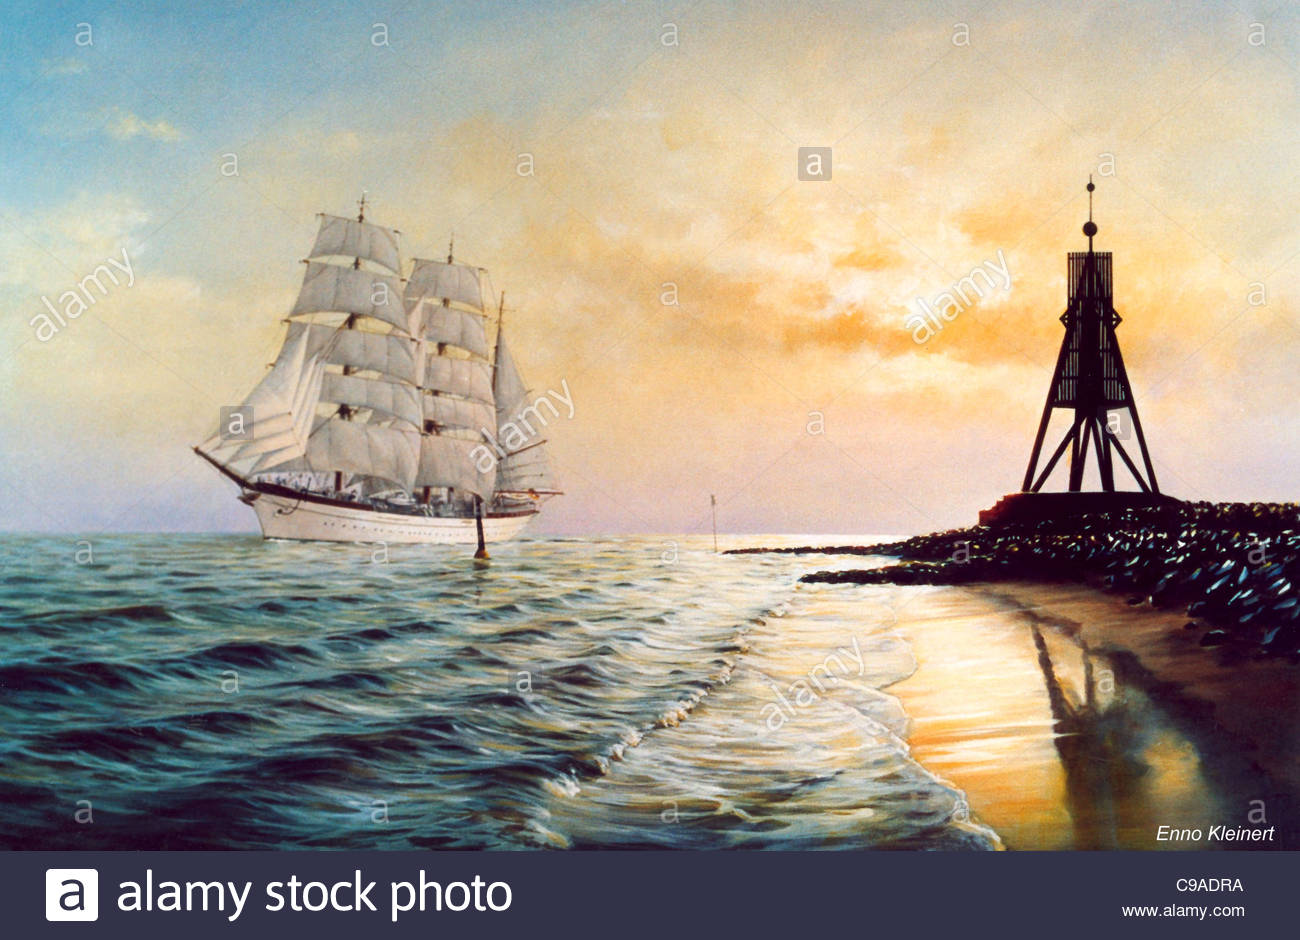 Sail training ship Gorch Foresail (II) Elbmndung - Stock Image